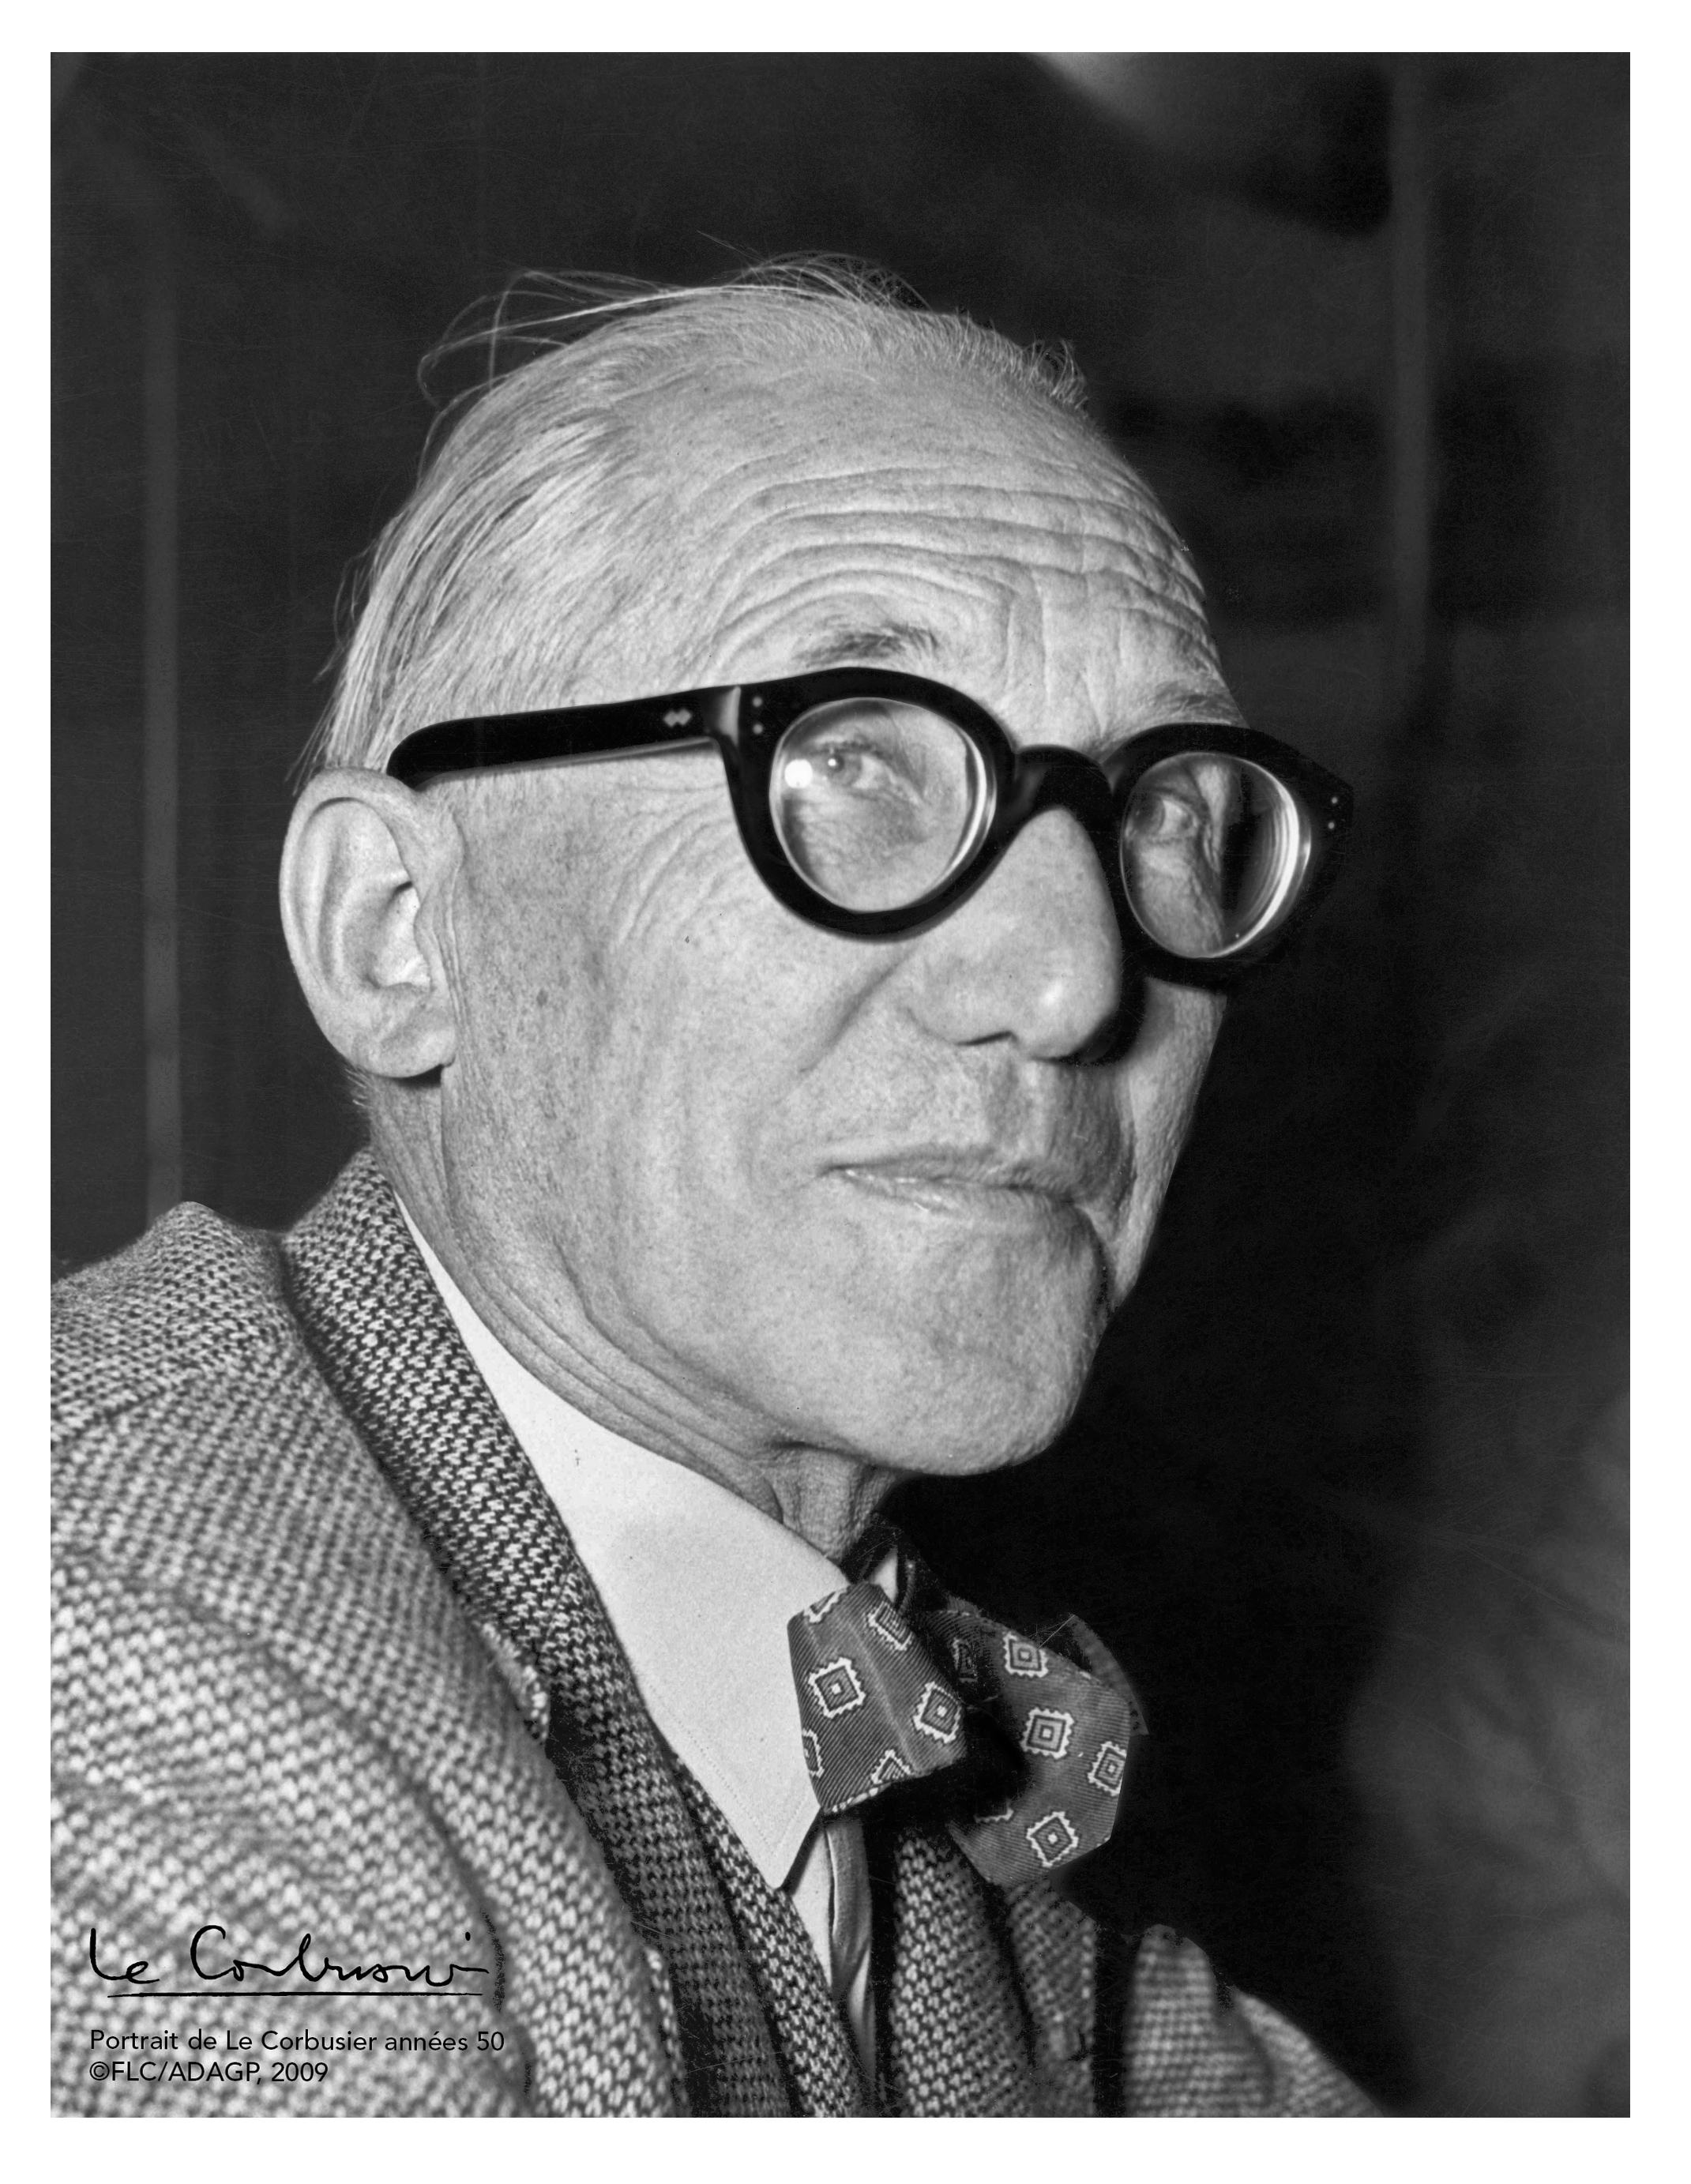 Portrait Le Corbusier